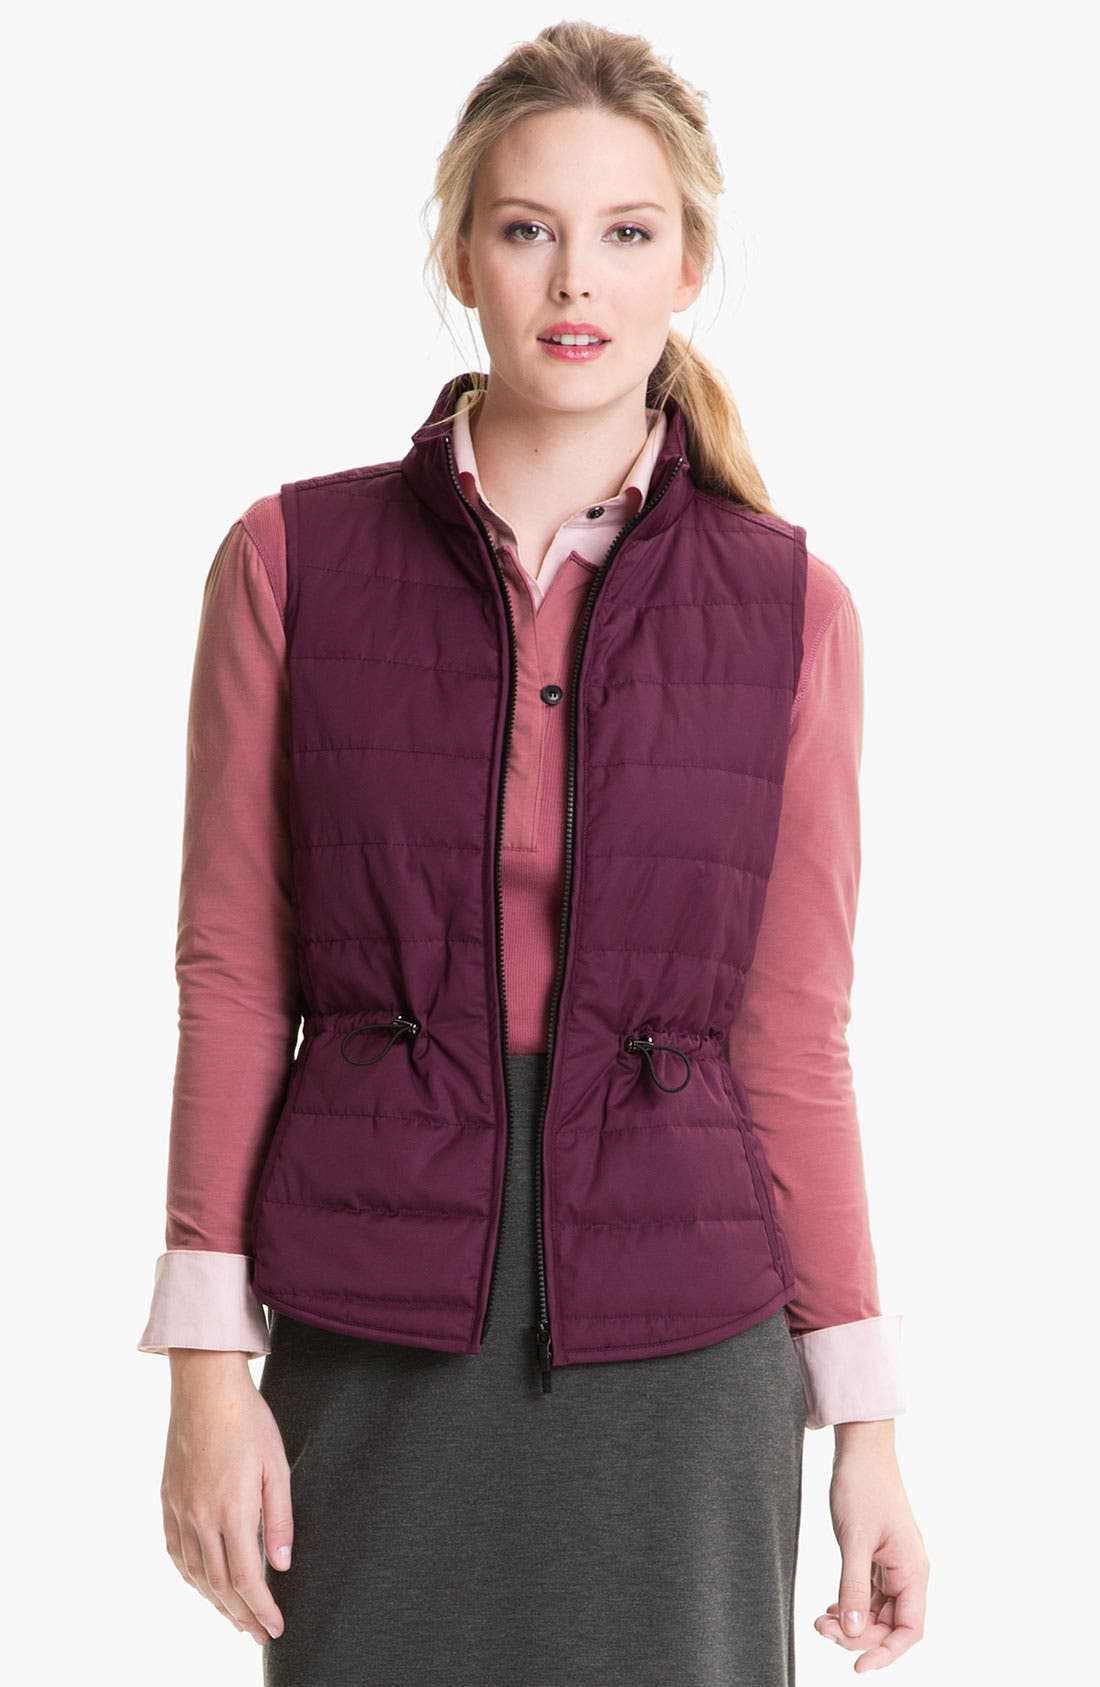 Alternate Image 1 Selected - Lafayette 148 New York 'Dynamic' Vest